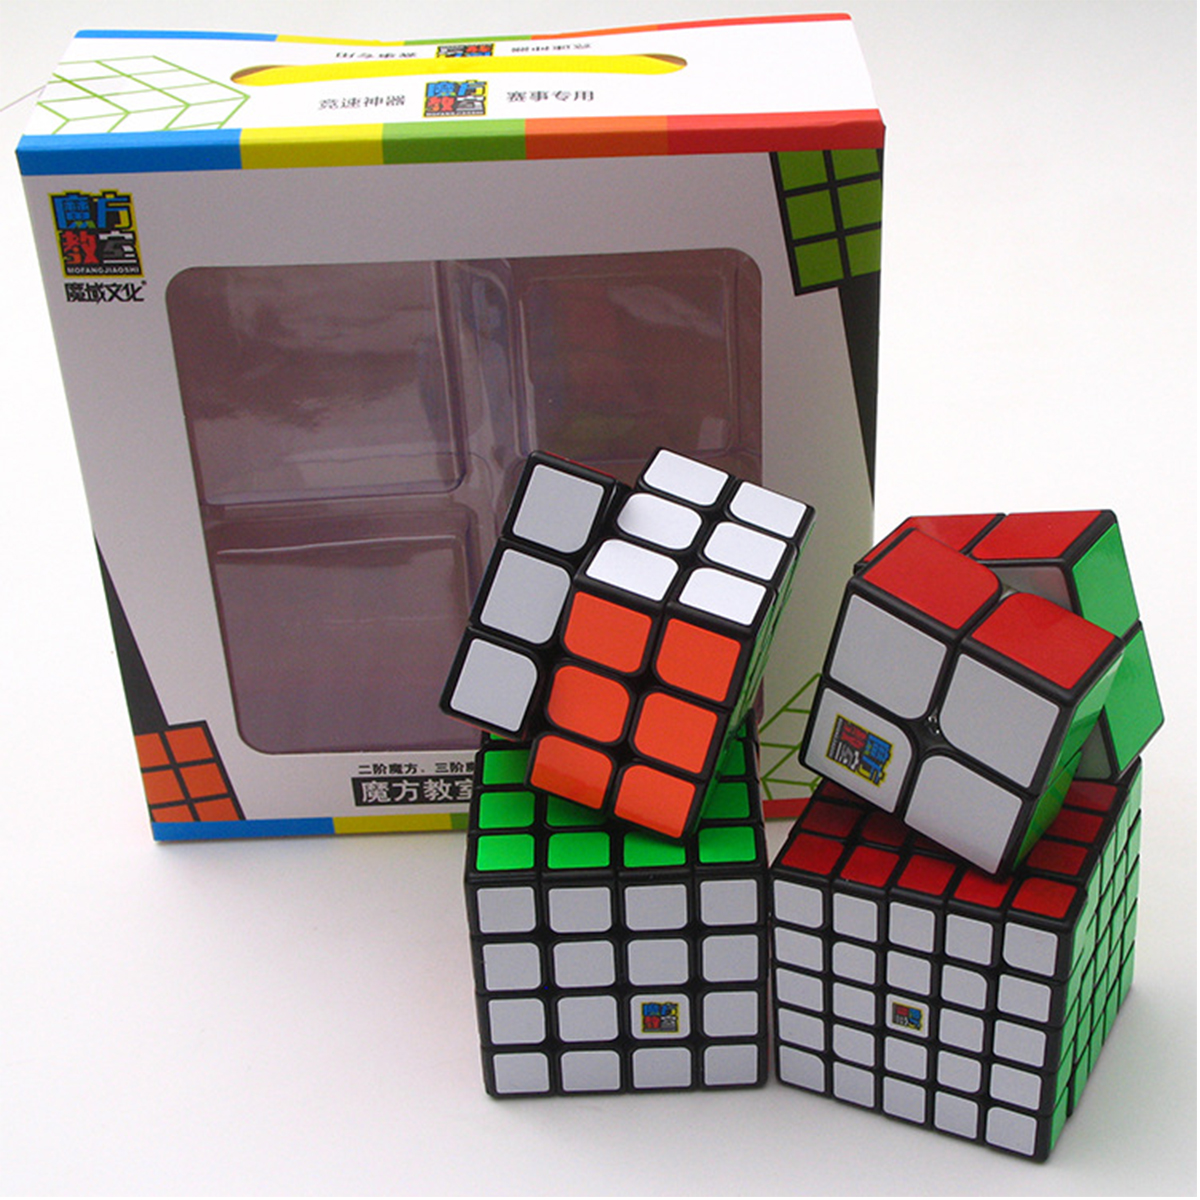 Best Birthday Gift 4pcs/set 2x2x2 3x3x3 4x4x4 5x5x5 Stickerless Magic Cube Set Puzzle Boys 2*2*2 3*3*3 4*4*4 5*5*5 Moyu Cubes Tool Organizers